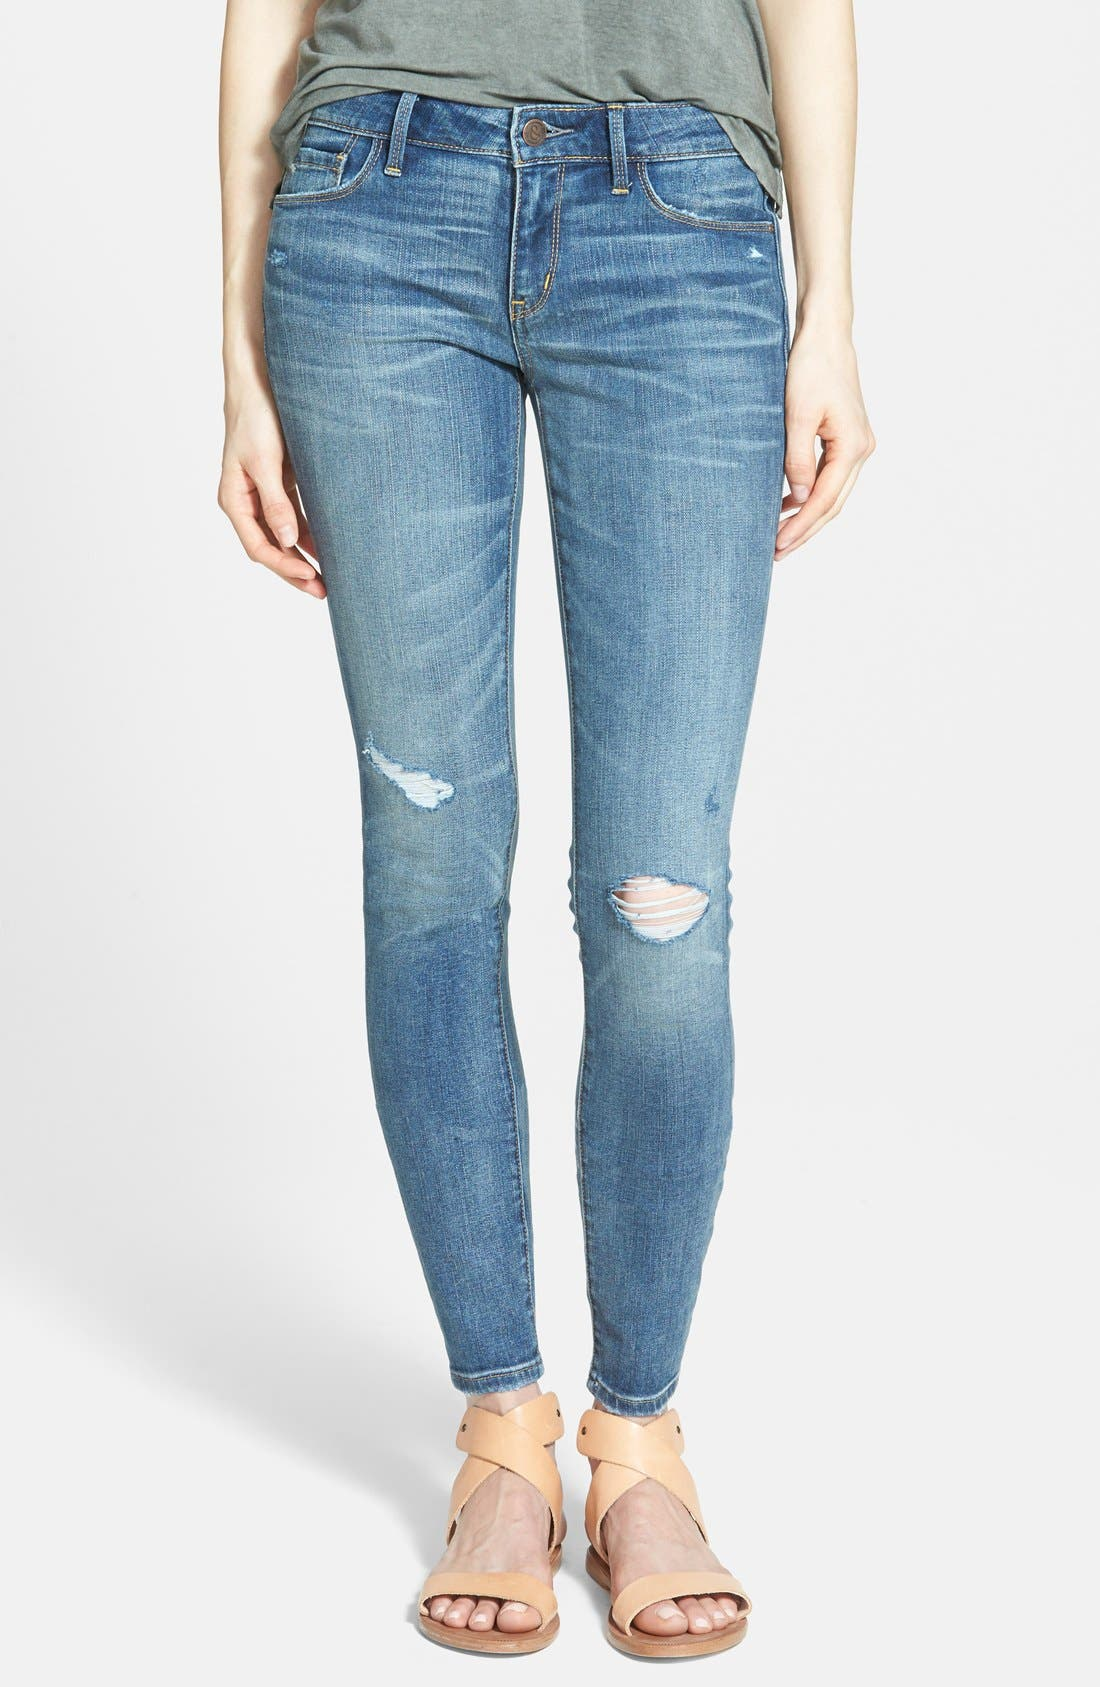 Alternate Image 1 Selected - Treasure&Bond Skinny Jeans (Medium Wash)